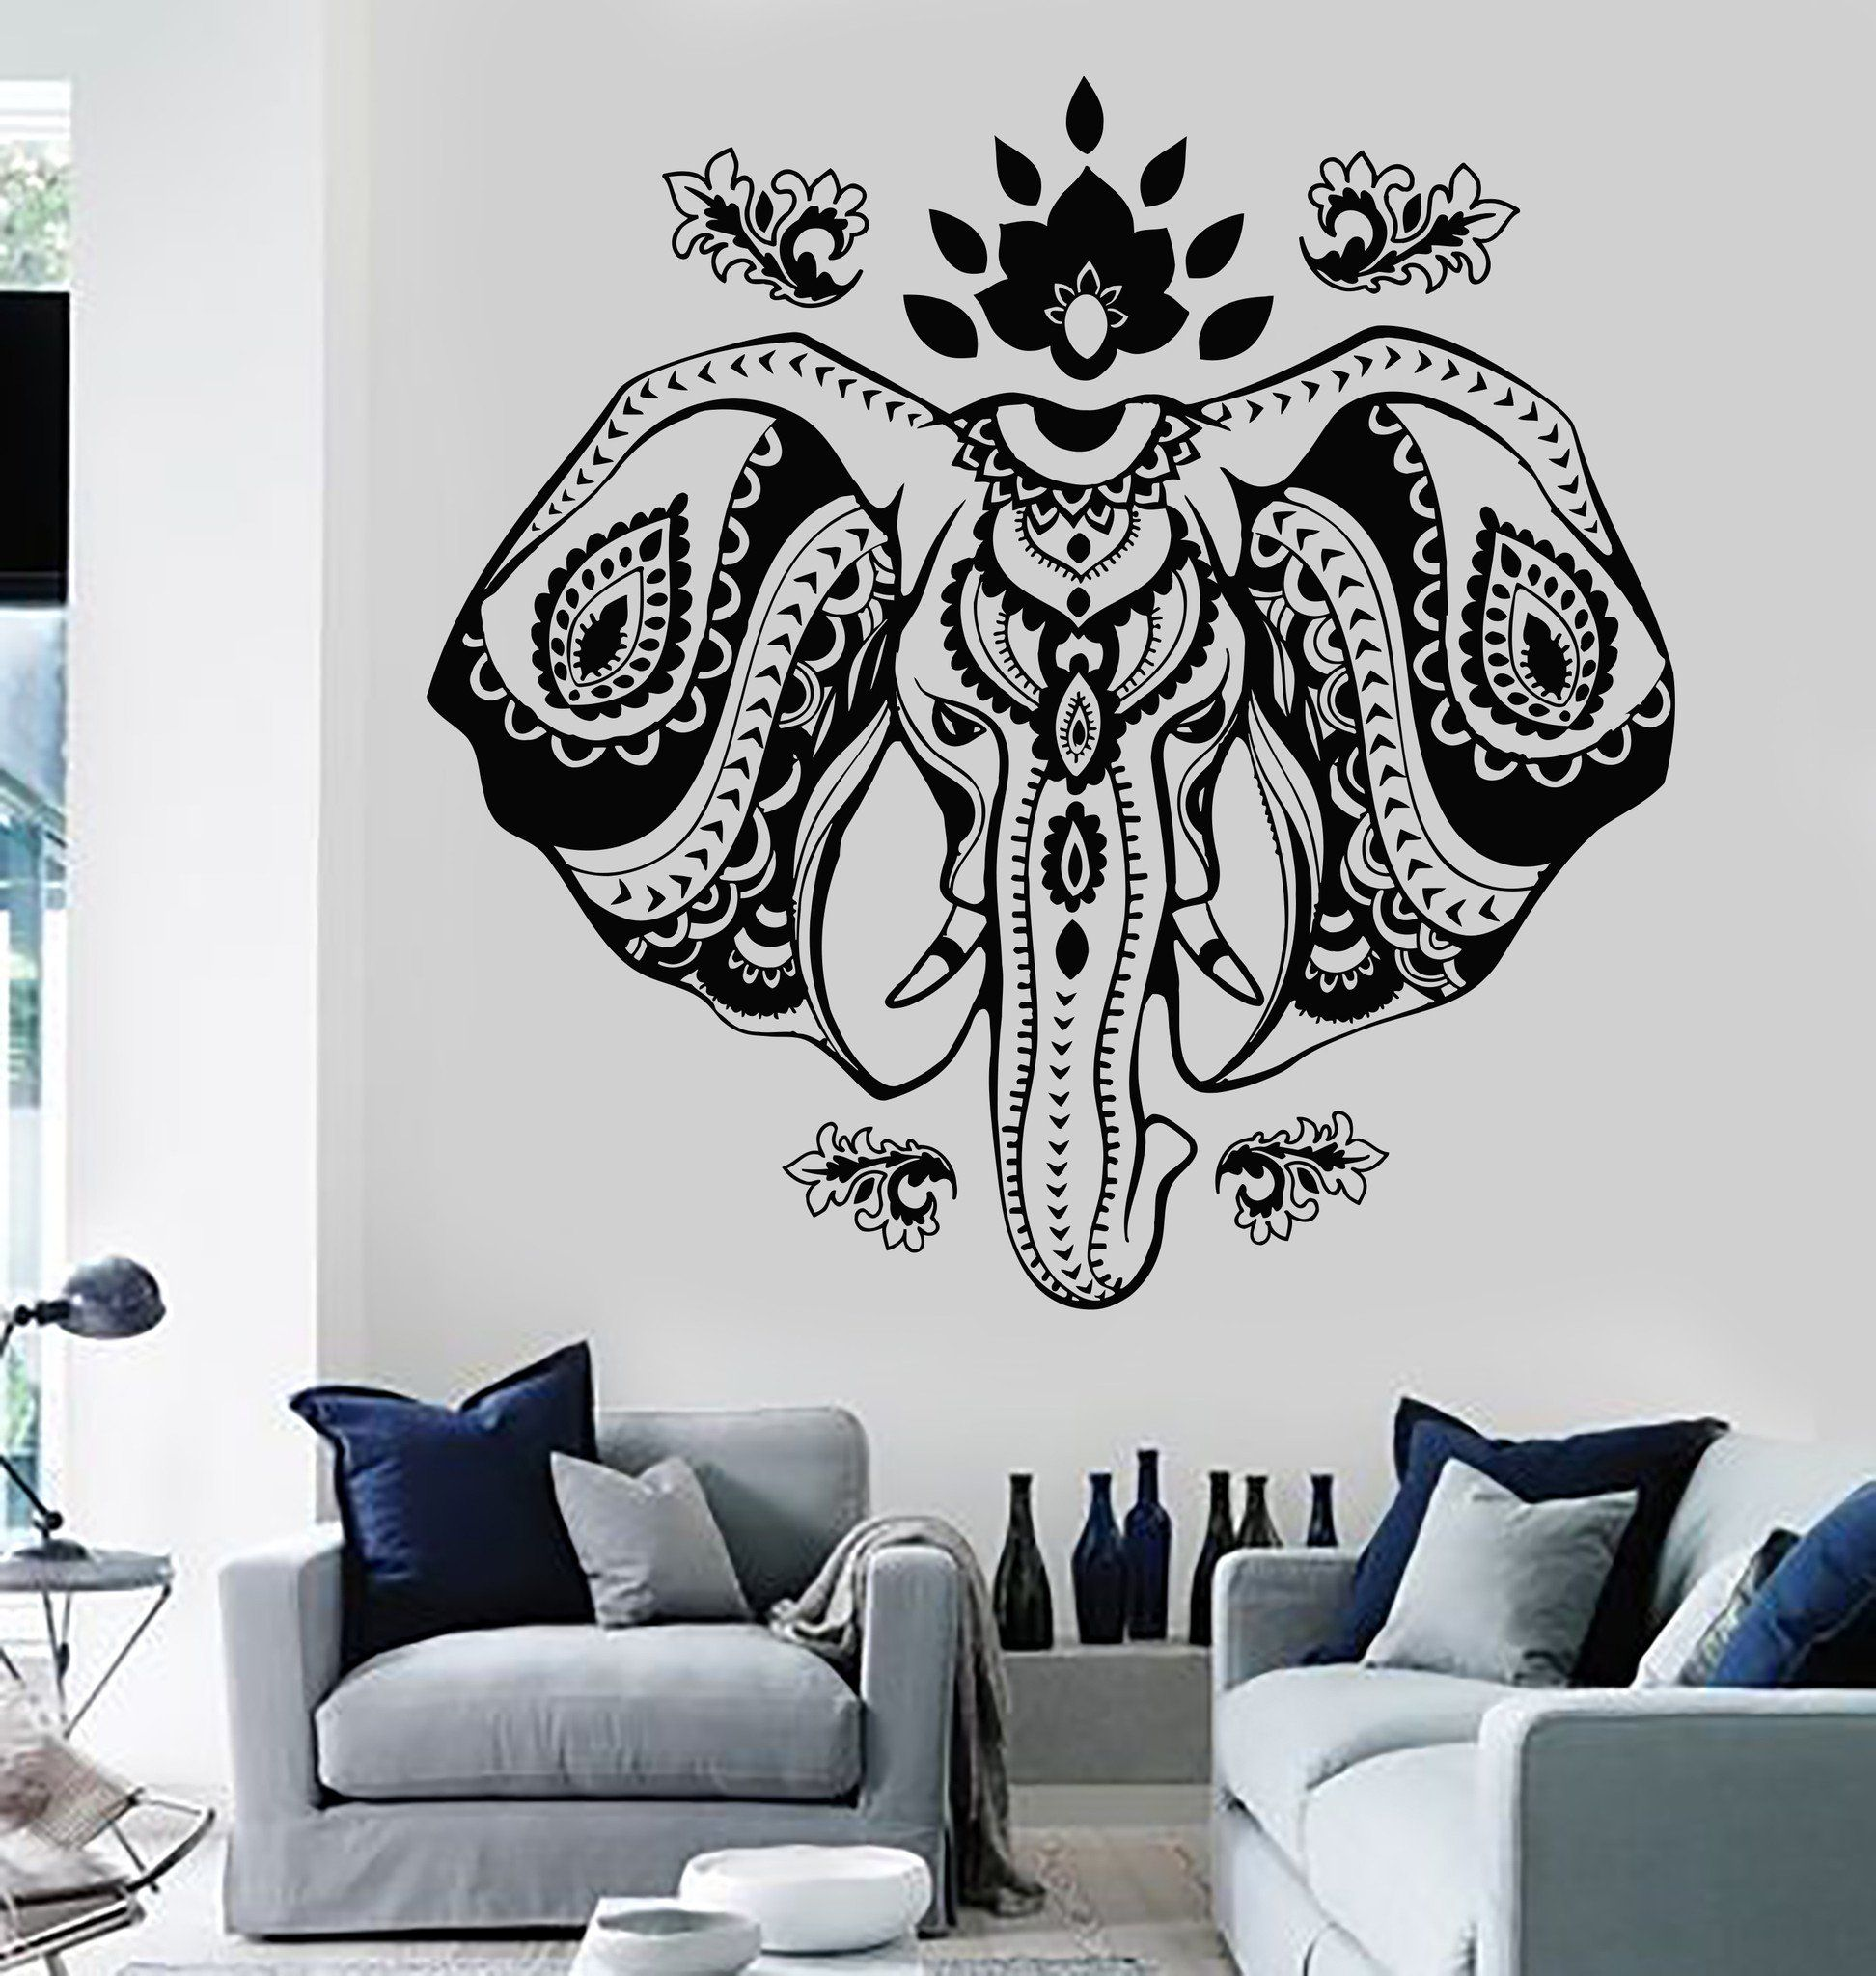 Vinyl Wall Decal Indian Elephant Head Lotus Hindu Symbol Stickers